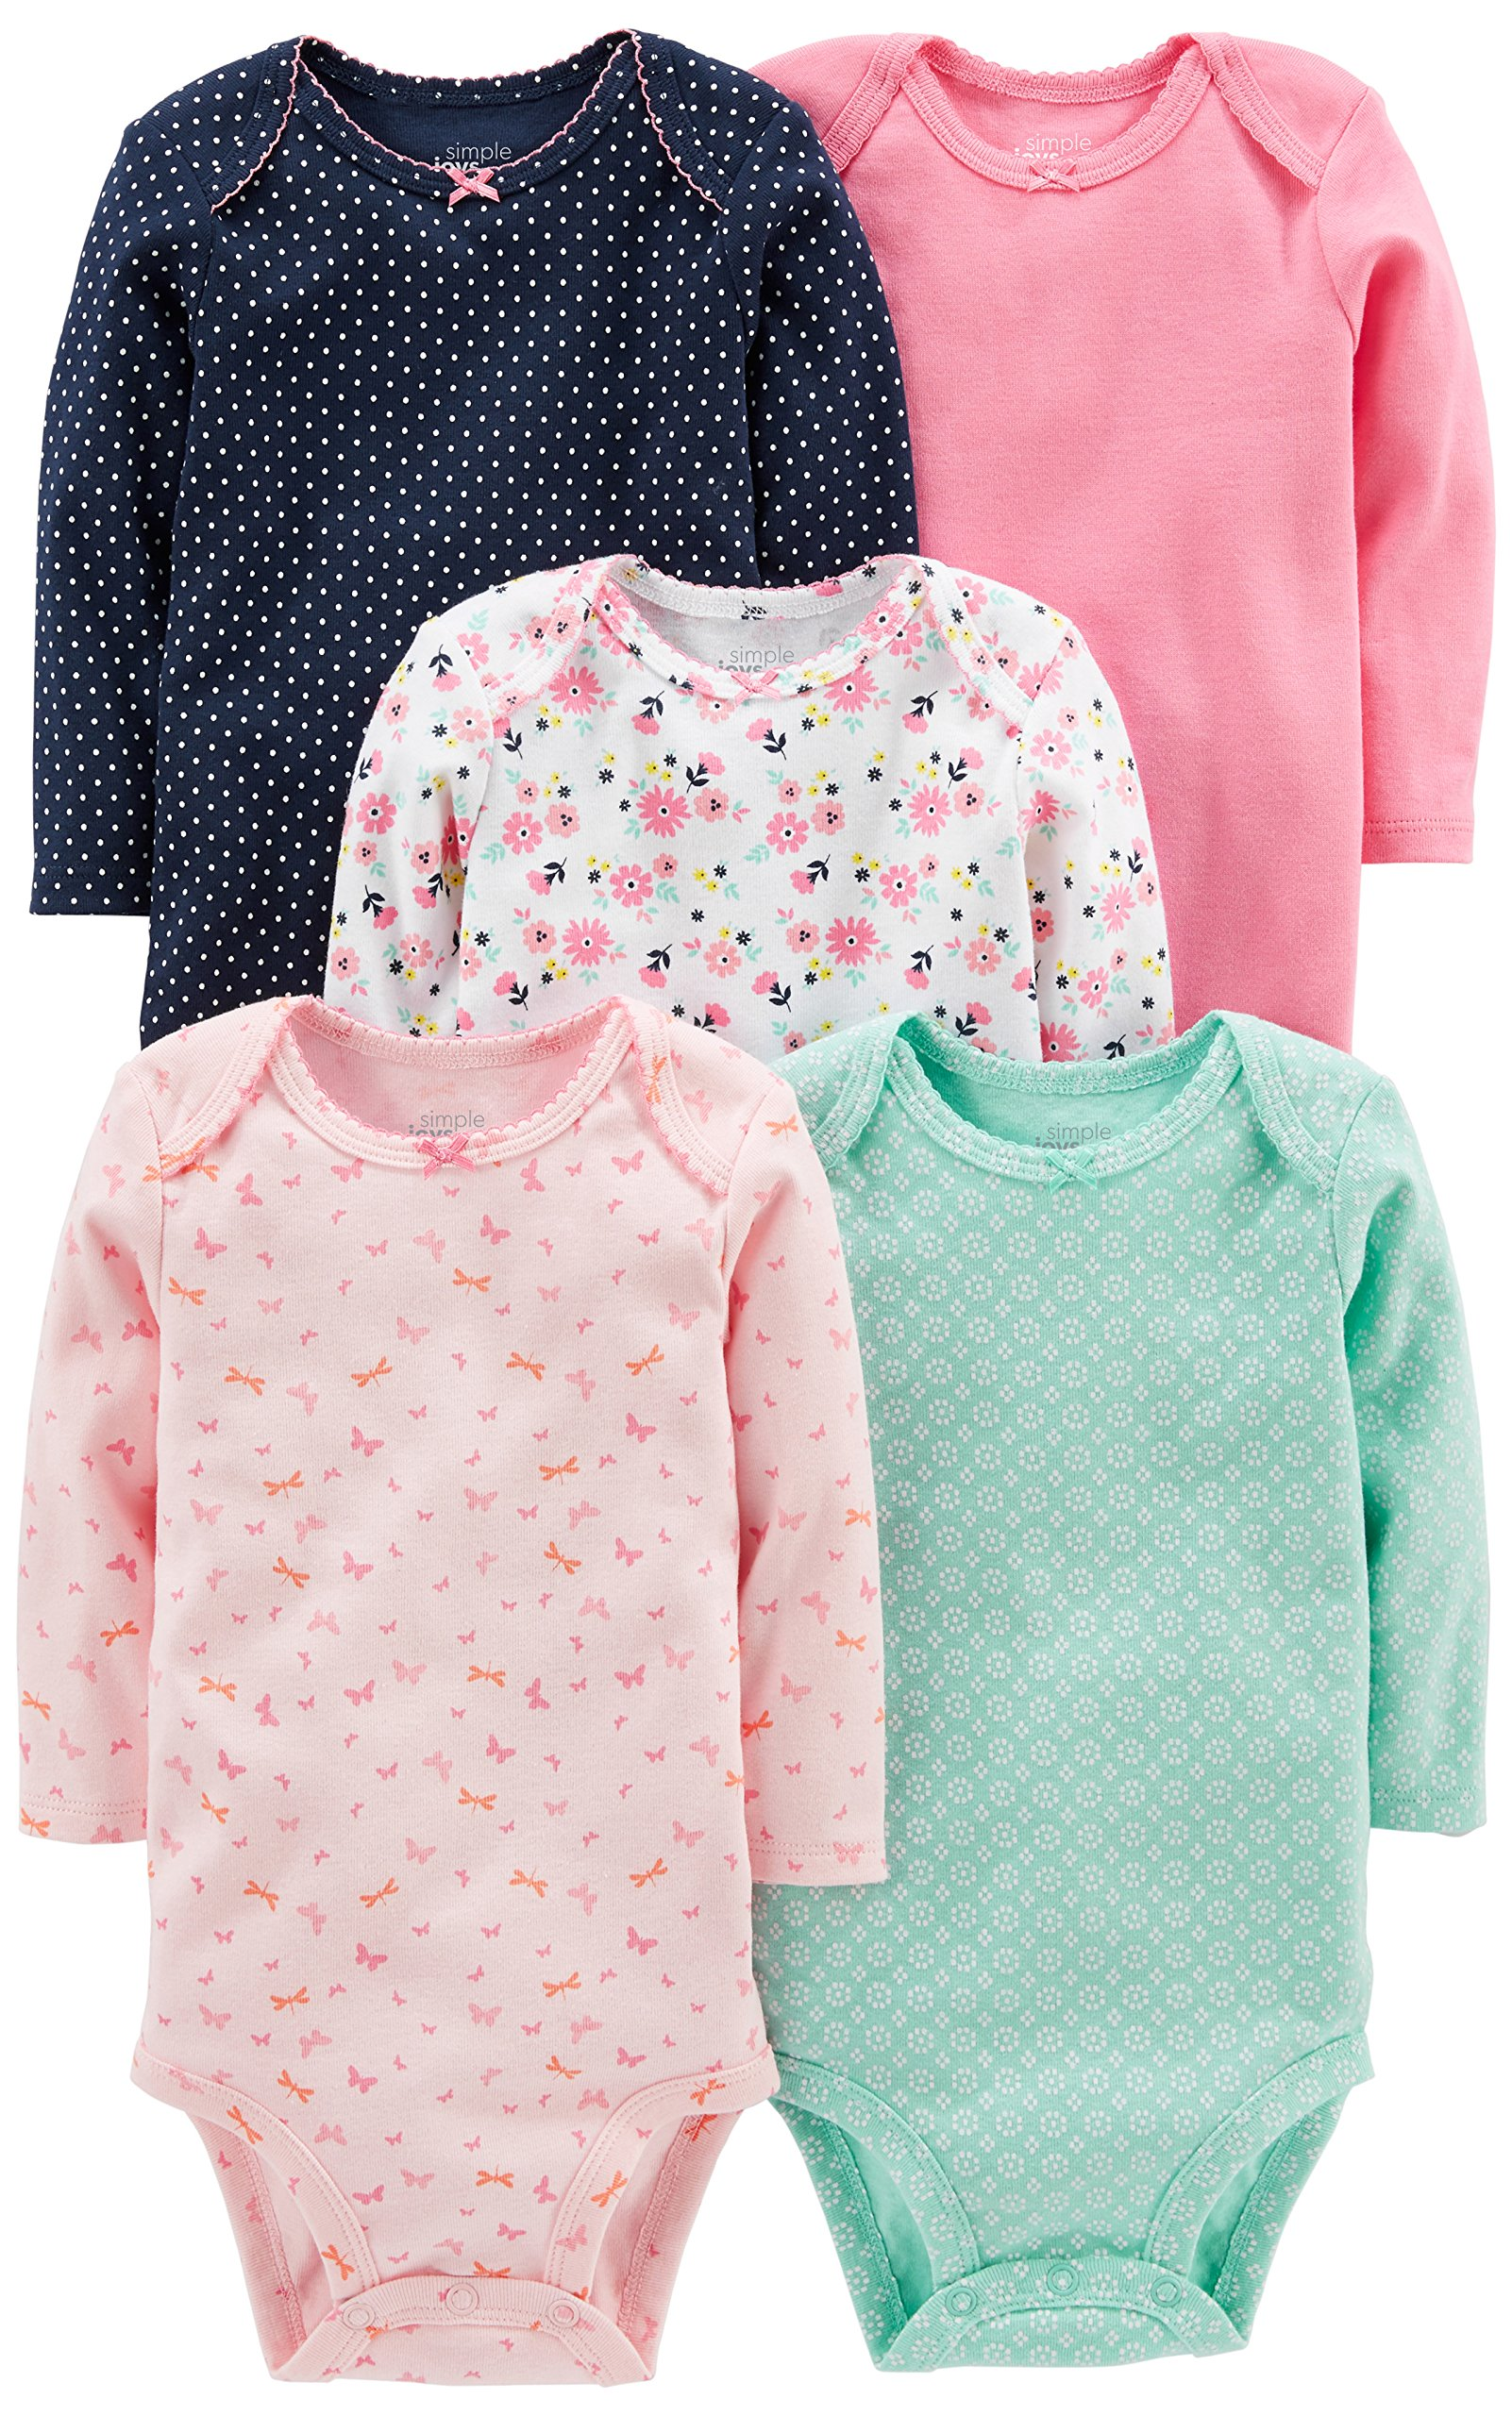 Simple Joys by Carter's Baby Girls' 5-Pack Long-Sleeve Bodysuit, Pink/Navy/Mint, 18 Months by Simple Joys by Carter's